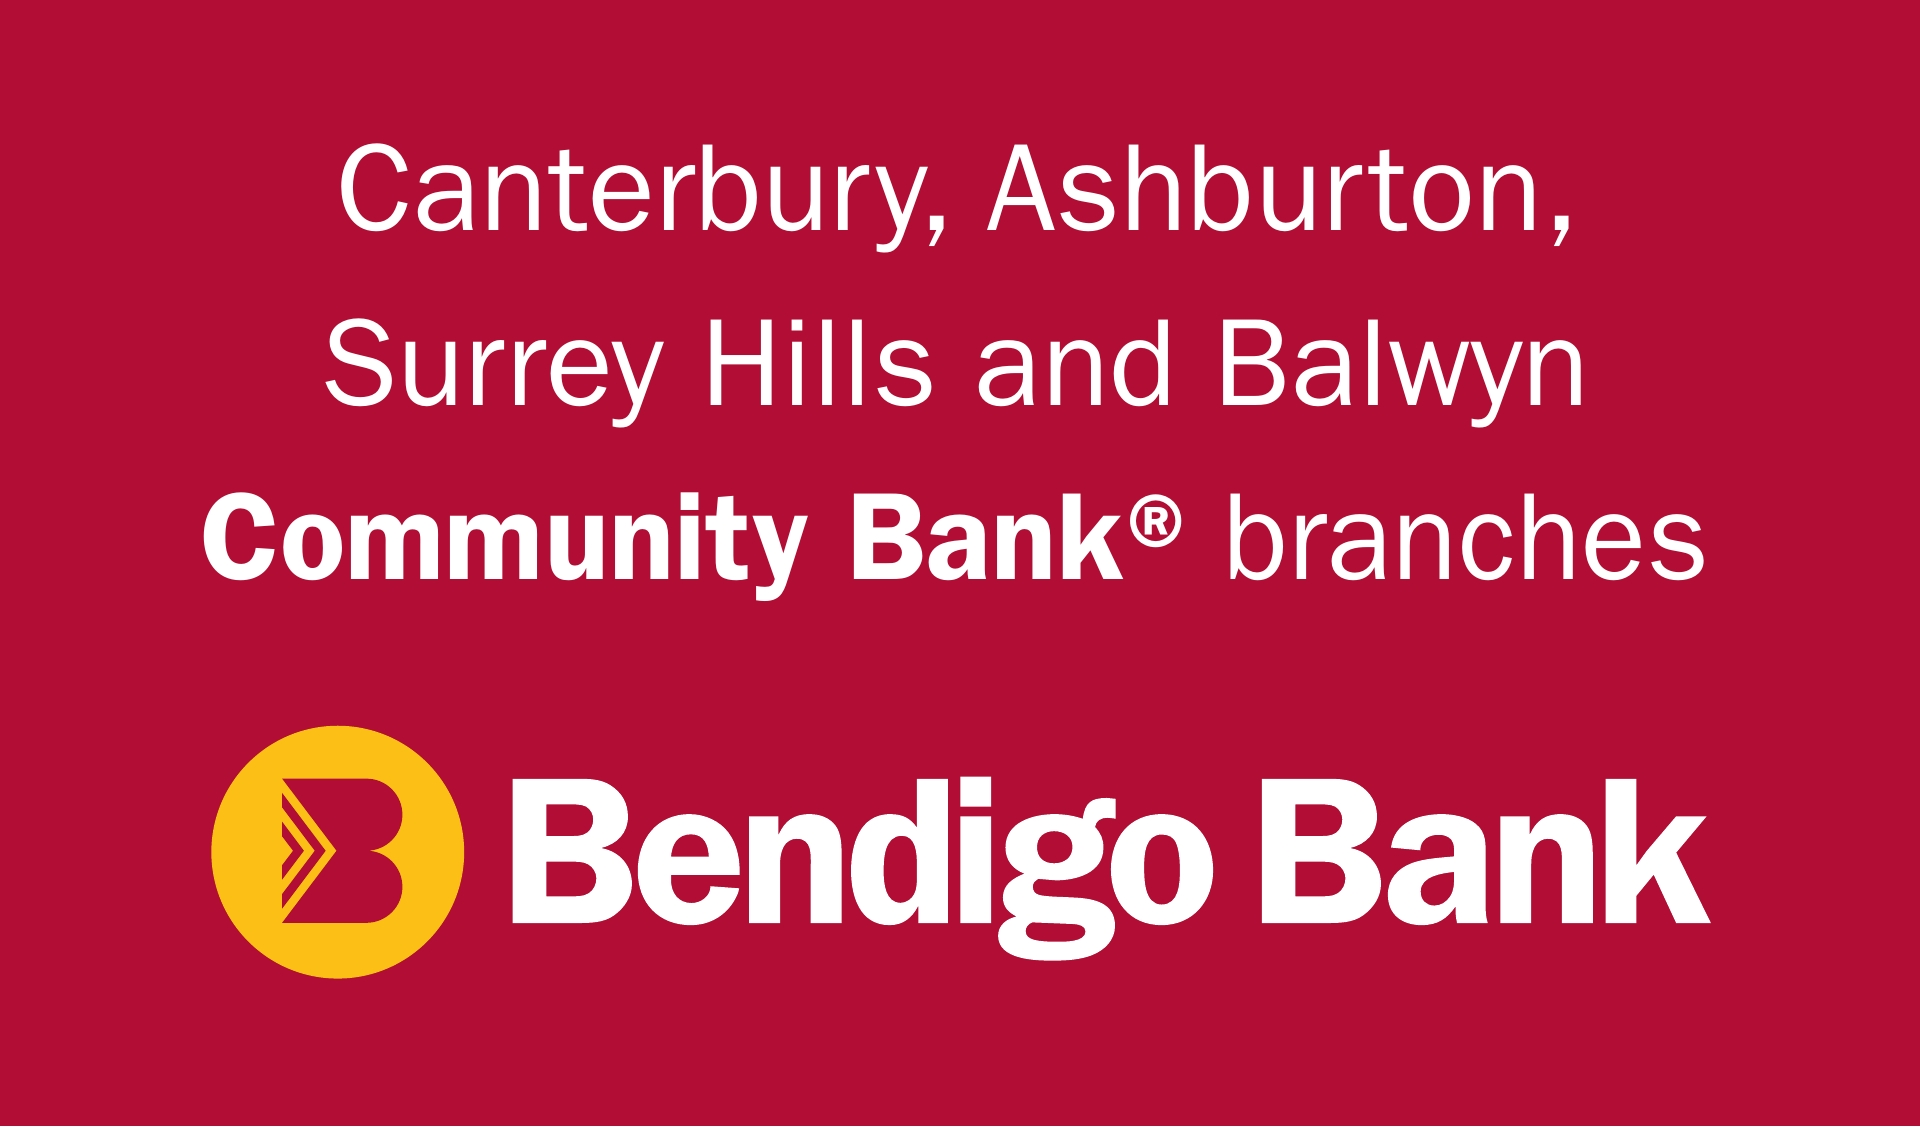 Sponsor logo - Bendigo Bank